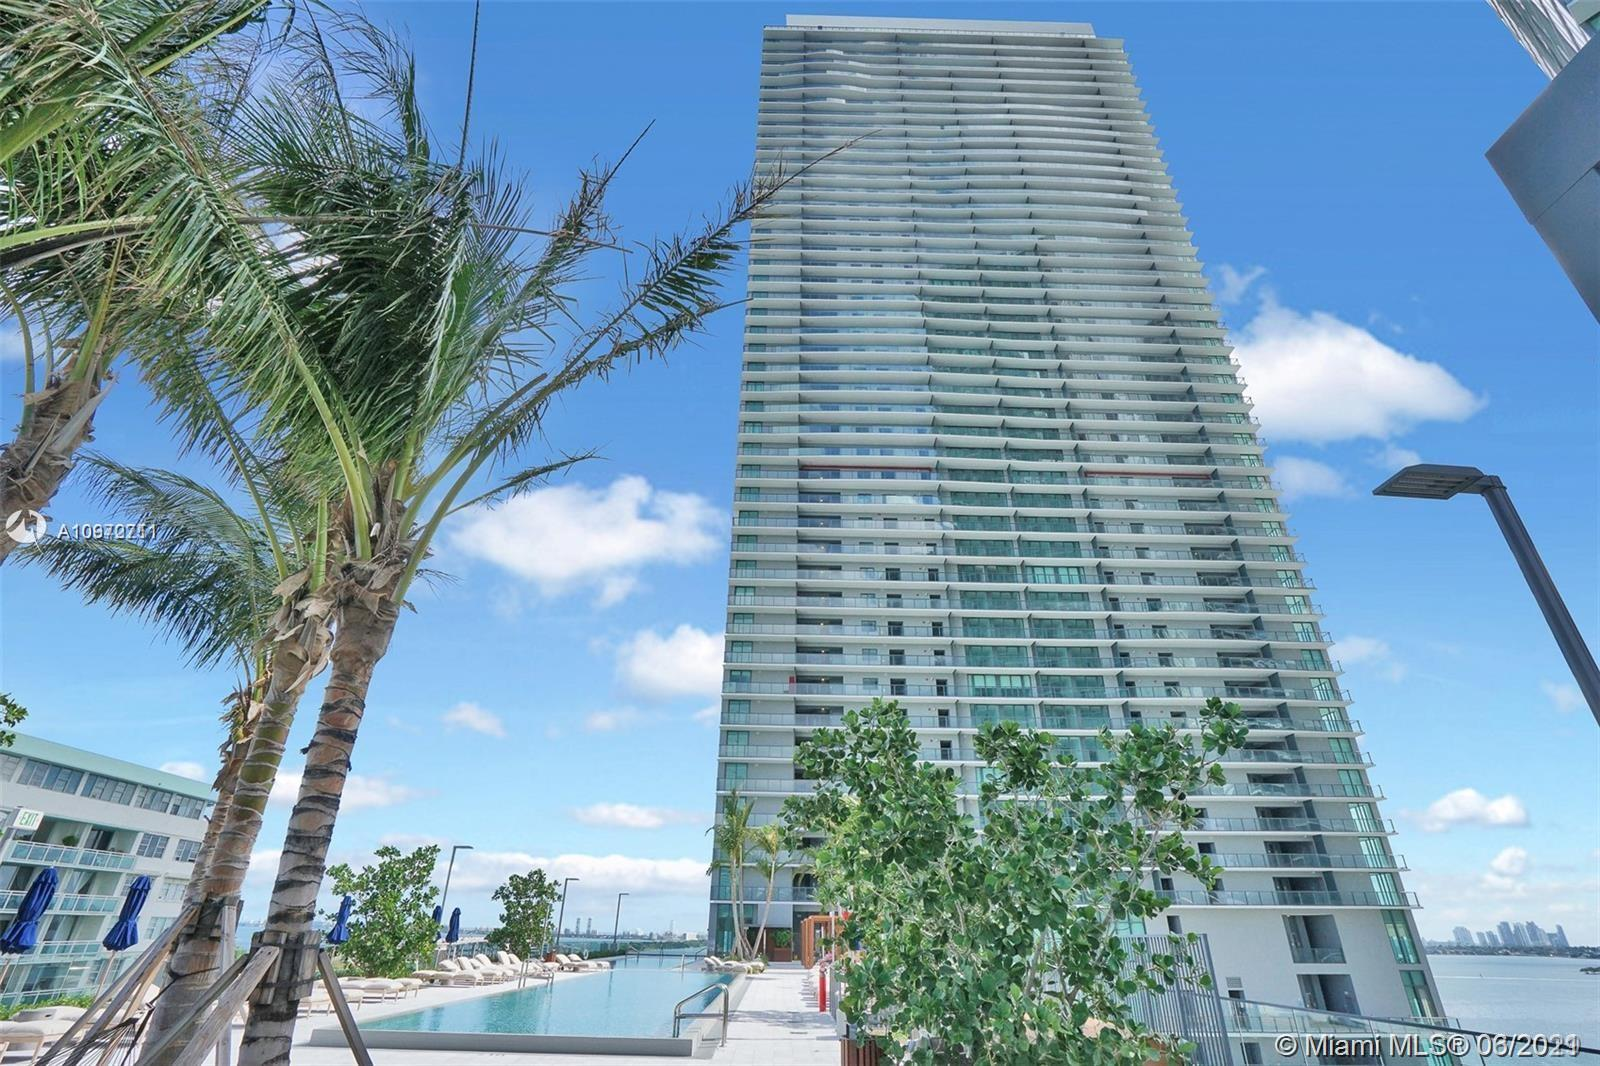 ** This listing is for 7 units bundle sale #303/#304/#3404(MLS#A10962675)/#3904/#4404/#4602 (1-bed)/#4703. Gorgeous 3b/3.5b condo in the Heart of Edgewater has a multi-million dollar, unobstructed view of the Biscayne Bay! This breathtaking condo features its own foyer entrance with private elevator access, European cabinetry, Sub-Zero & Wolf appliances, floor to ceiling windows, two private balconies & marble floors in the bathrooms. The unit has porcelain tile throughout, custom closets & black out shades. Resort-like amenities which include 2 Olympic size pools, hot tub, fitness center, spinning room, yoga room, spa, steam room, sauna, party room, business center, children's playroom, game room. 1 assigned parking space.